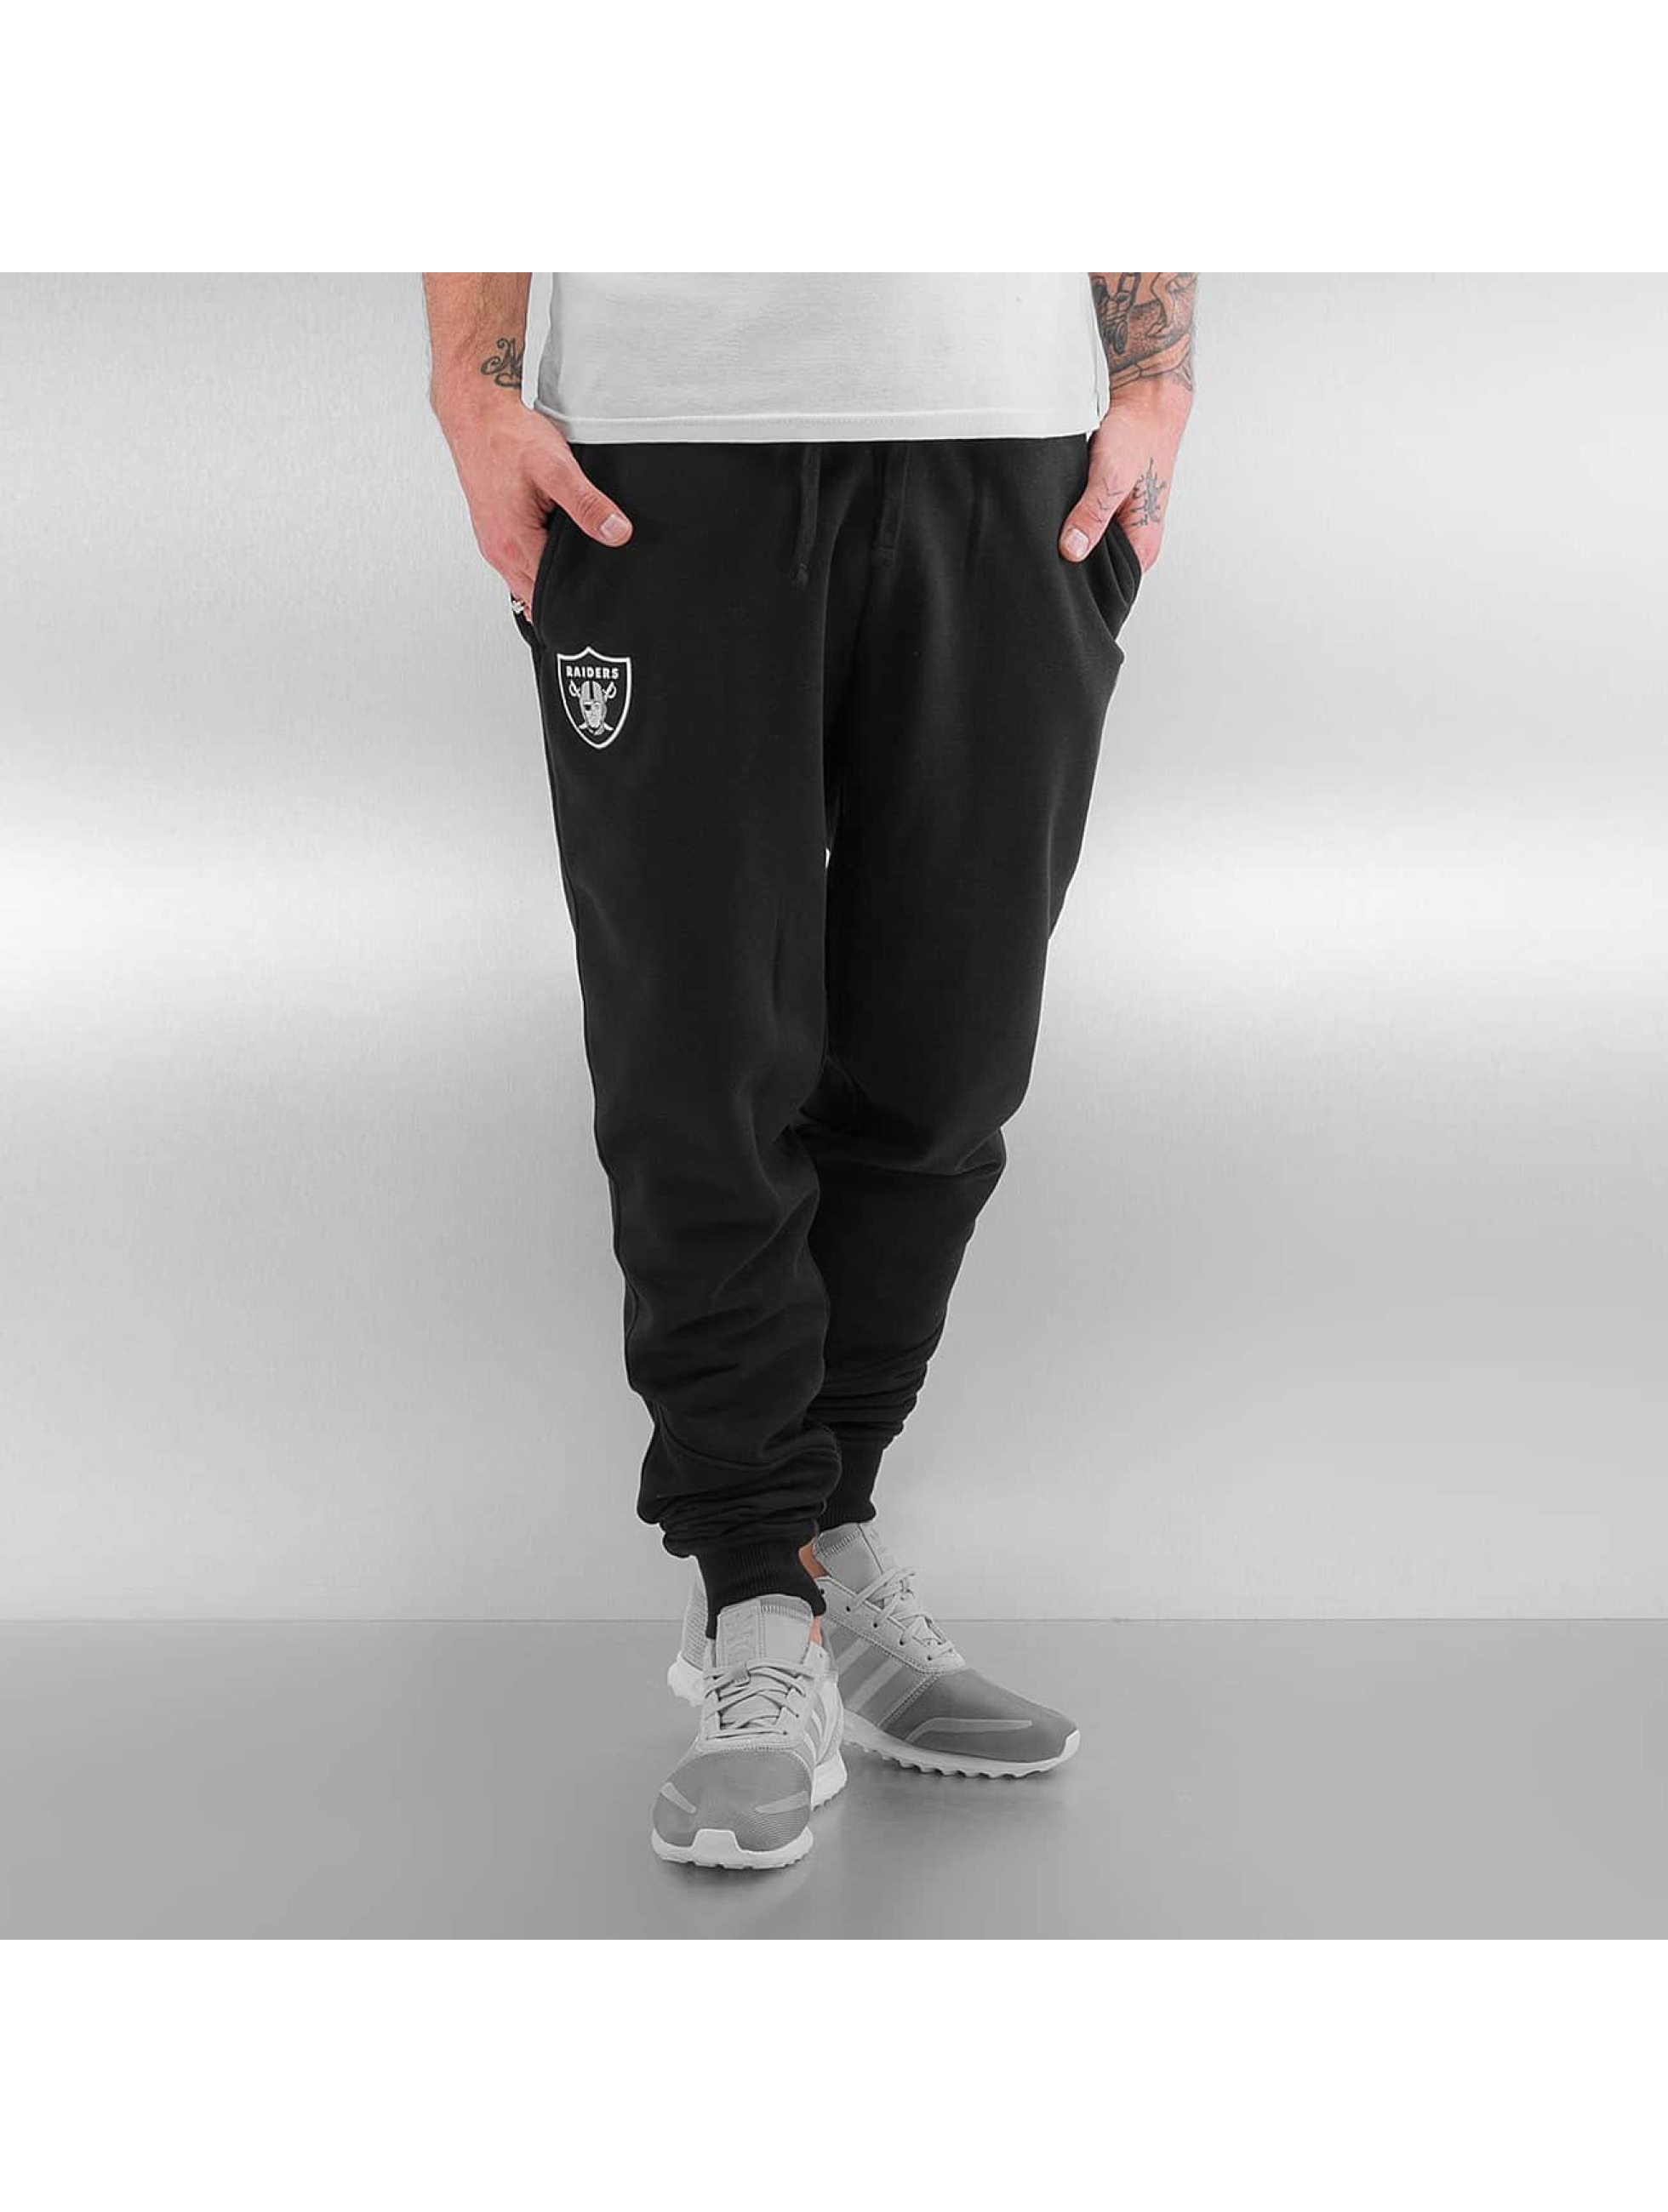 New Era Männer Jogginghose NFL Oakland Raiders in schwarz